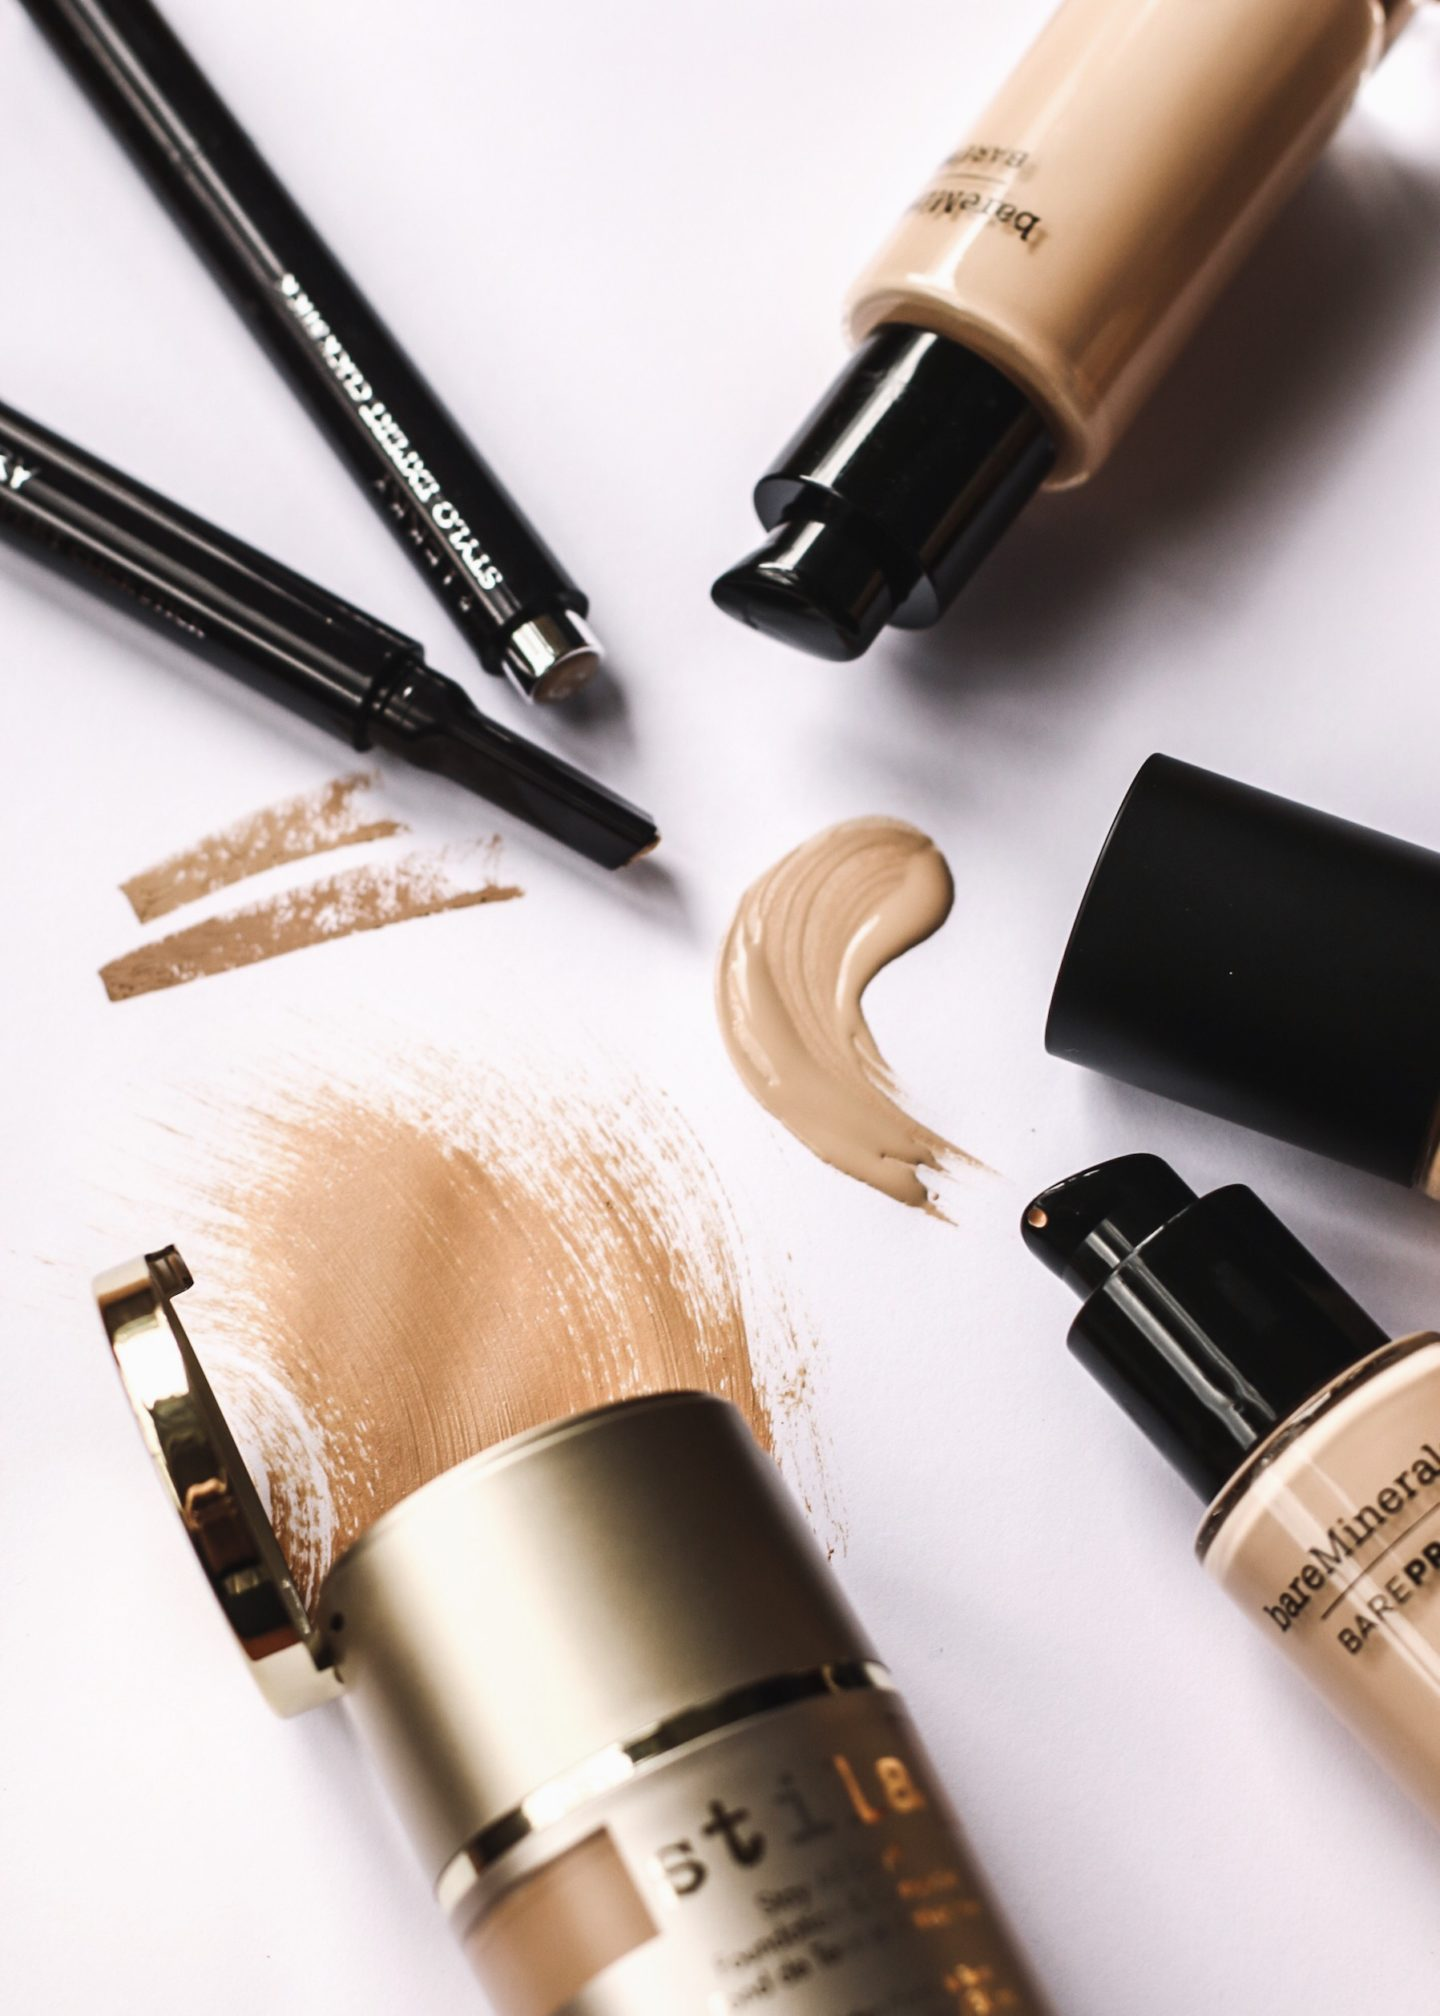 Gemma Watts reviews Stila Stay All Day Foundation and Concealer, By Terry Stylo Expert Concealer, BareMinerals BarePro Performance Wear Liquid Foundation